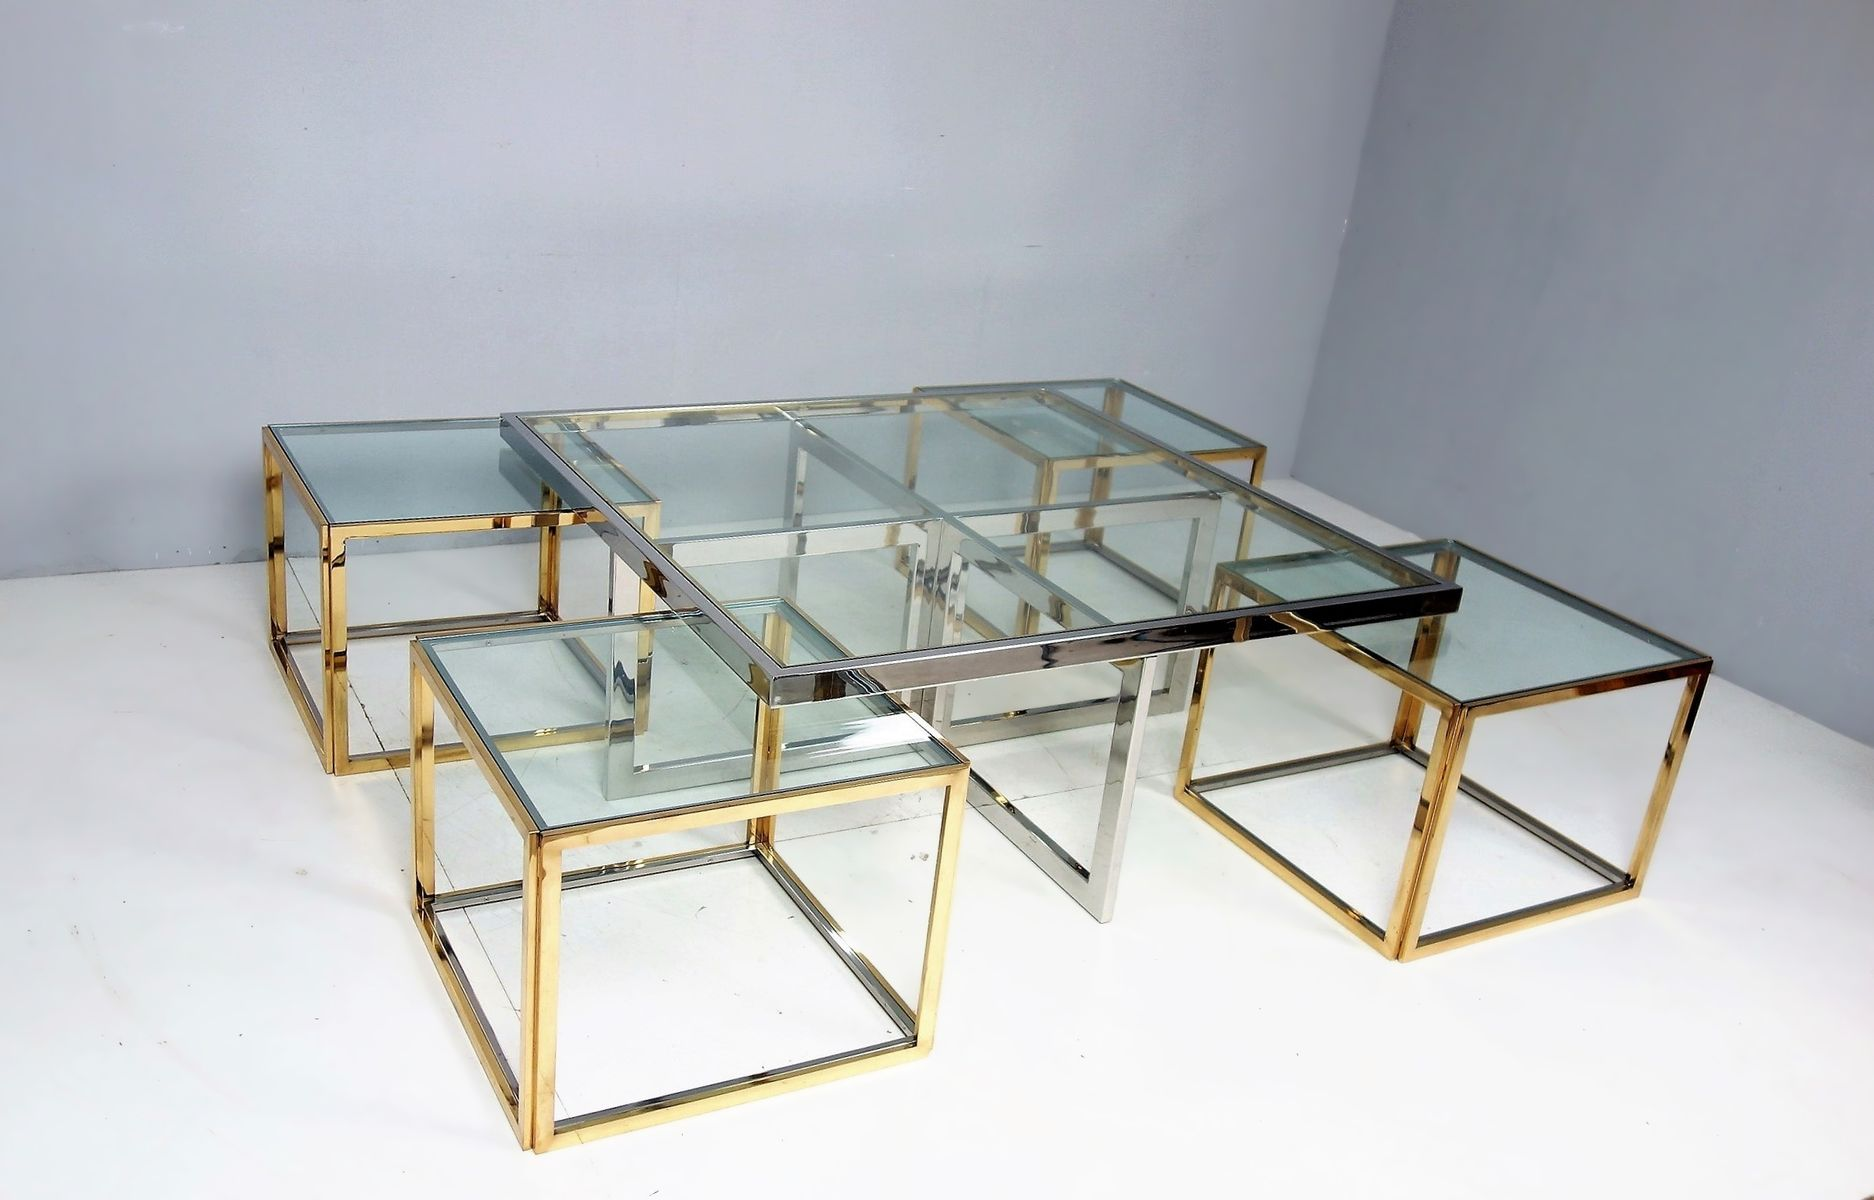 Large vintage coffee table with nesting tables by maison charles large vintage coffee table with nesting tables by maison charles 9 579000 price per piece geotapseo Choice Image